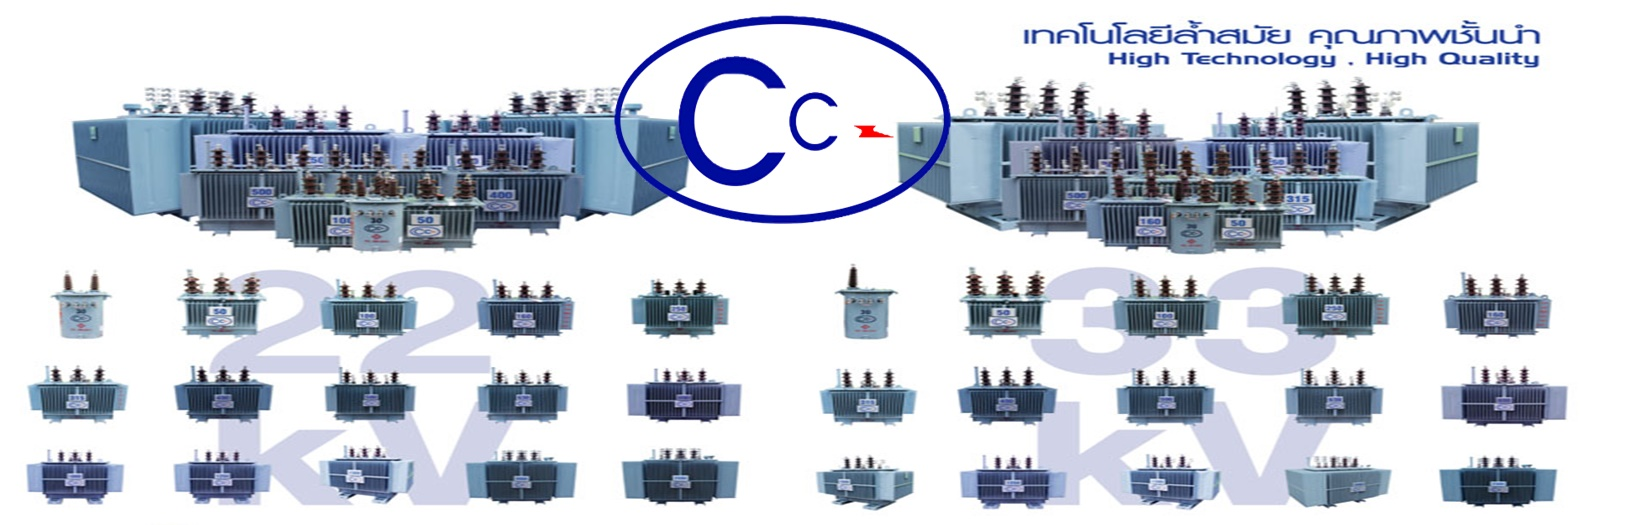 CC TRANSFORMER CO.,LTD.